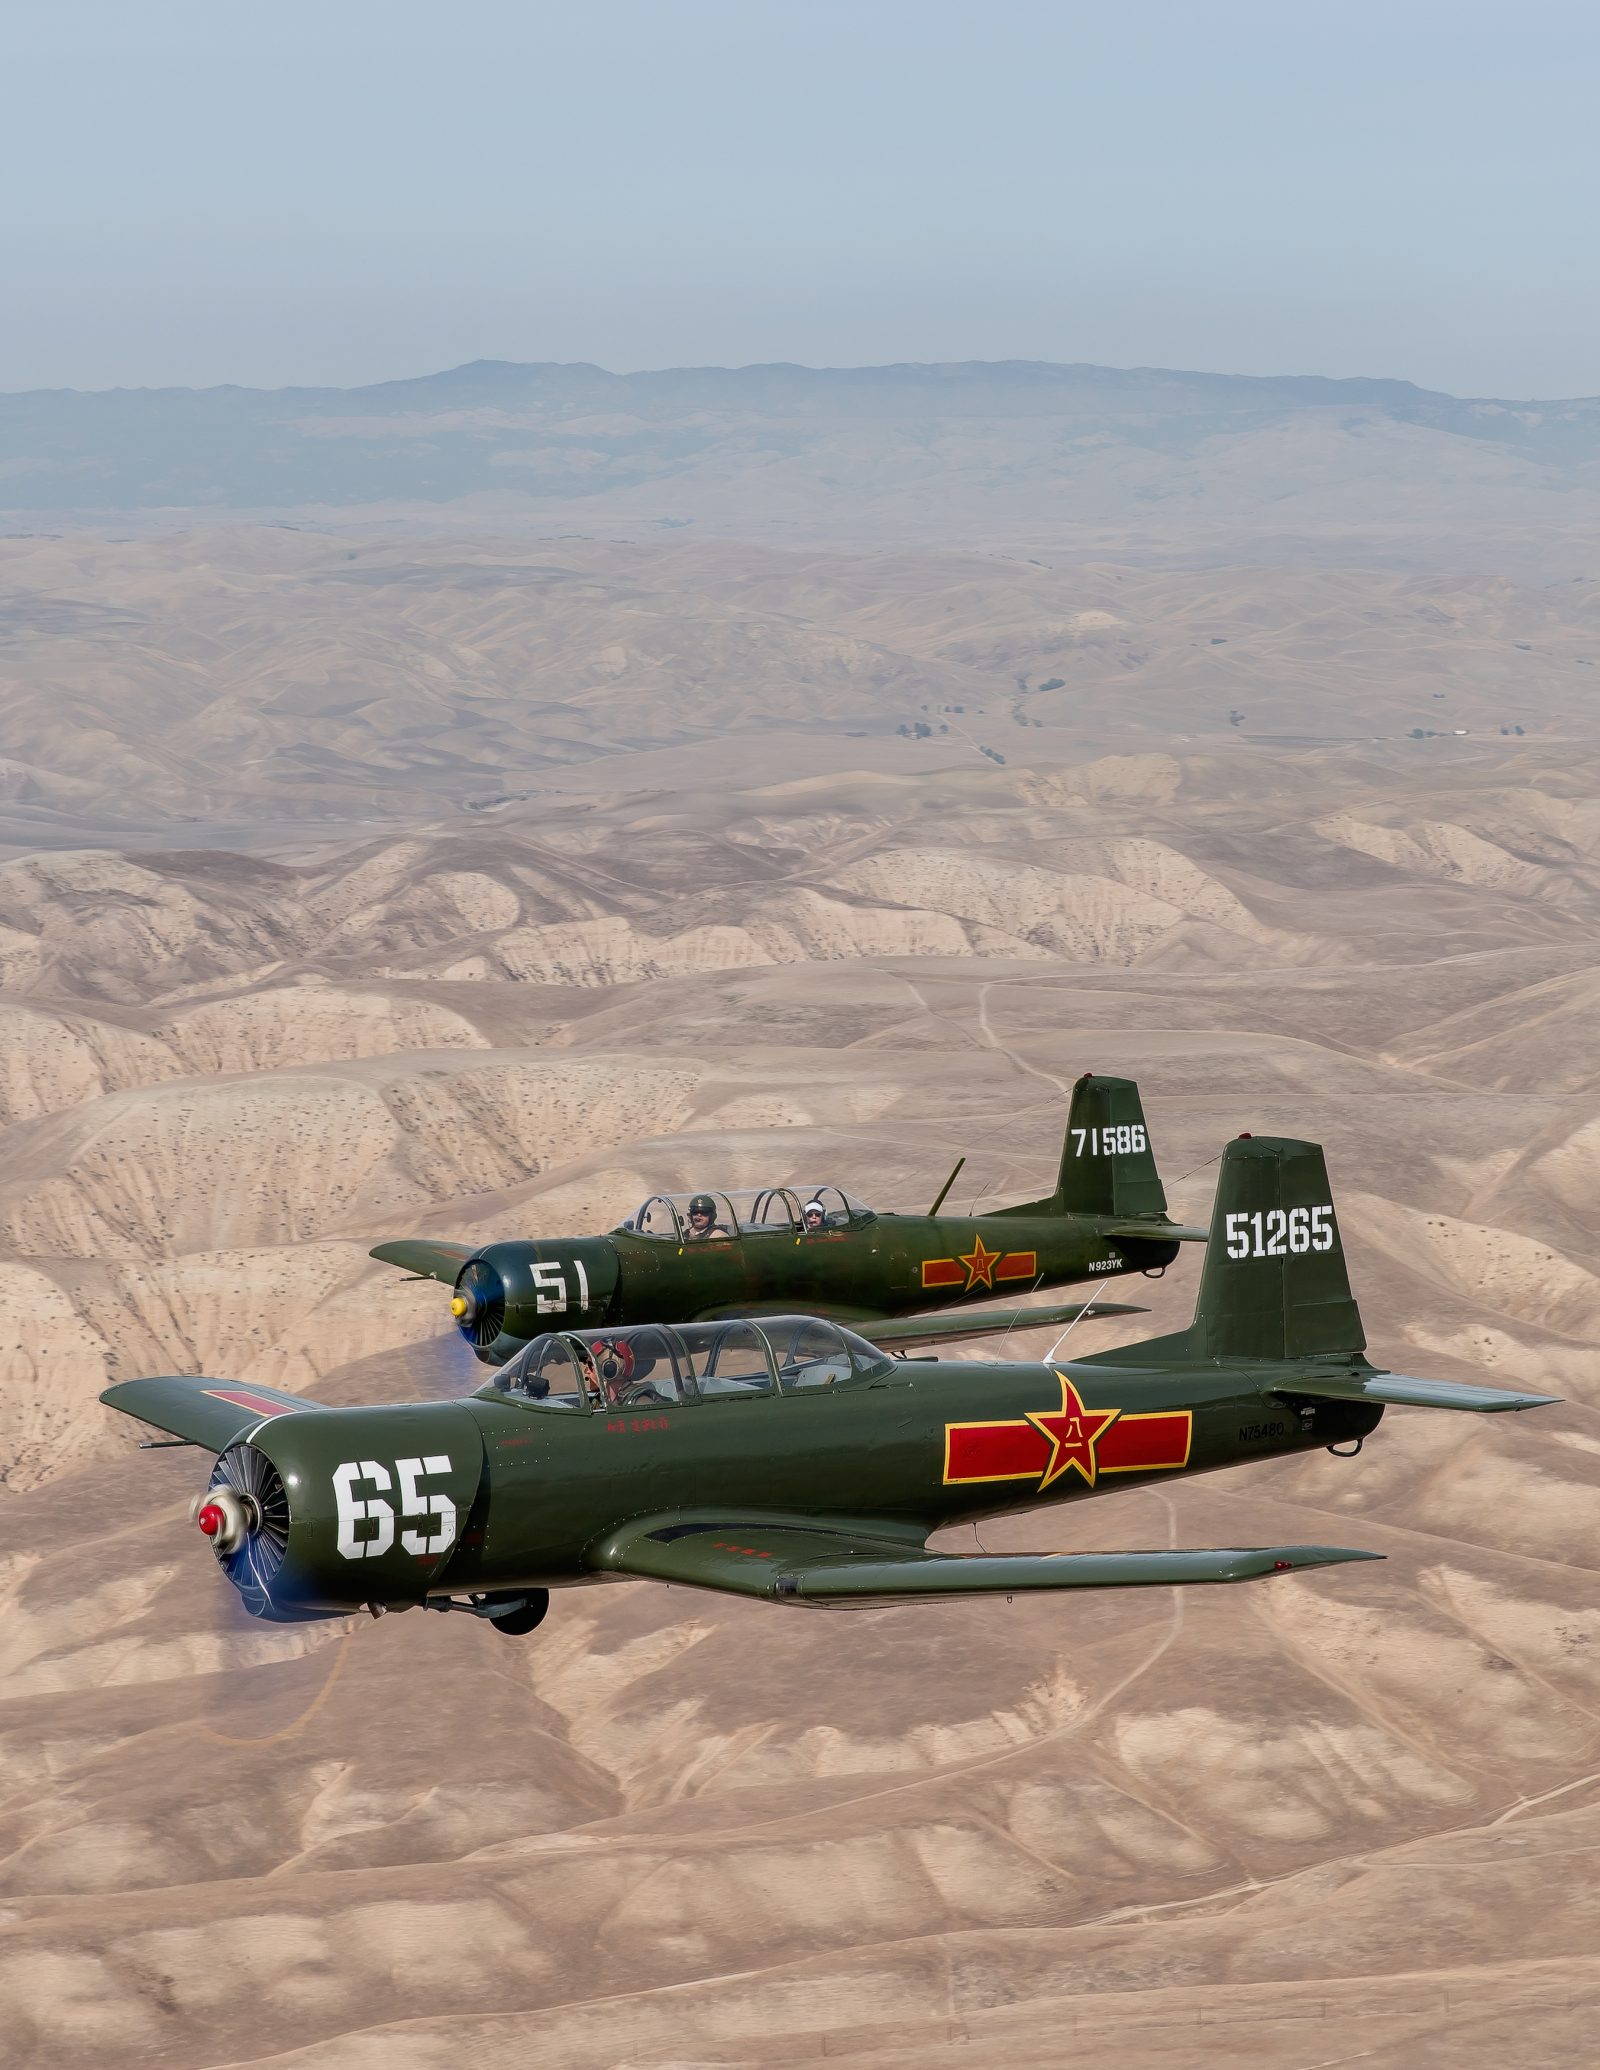 CJ-6's Over the Desert